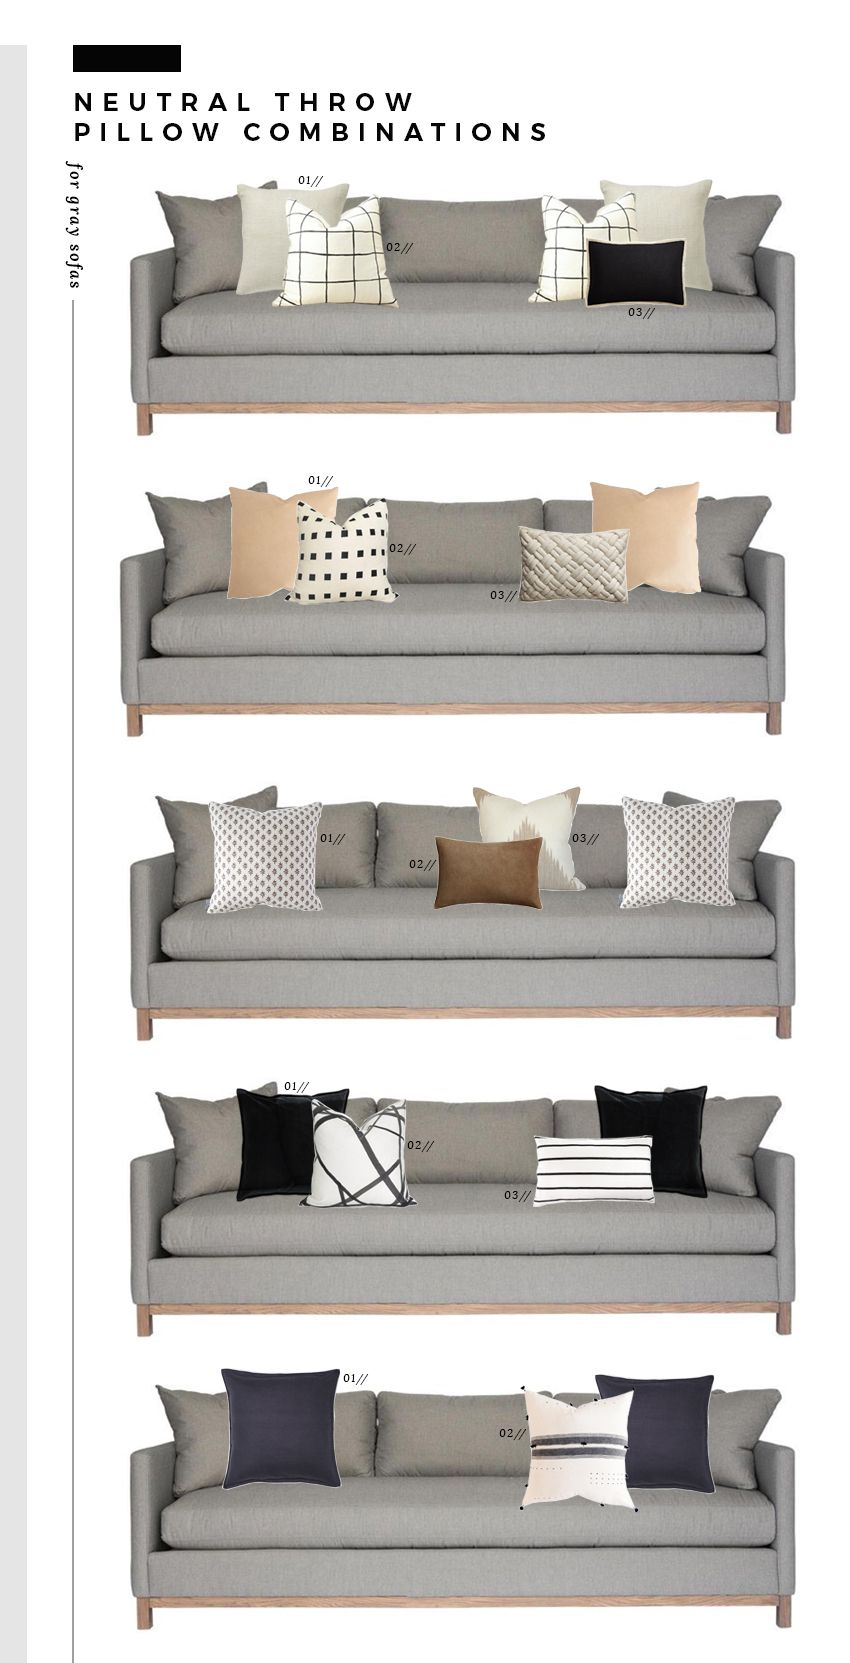 Marvelous Neutral Throw Pillow Combinations For White And Gray Sofas Uwap Interior Chair Design Uwaporg